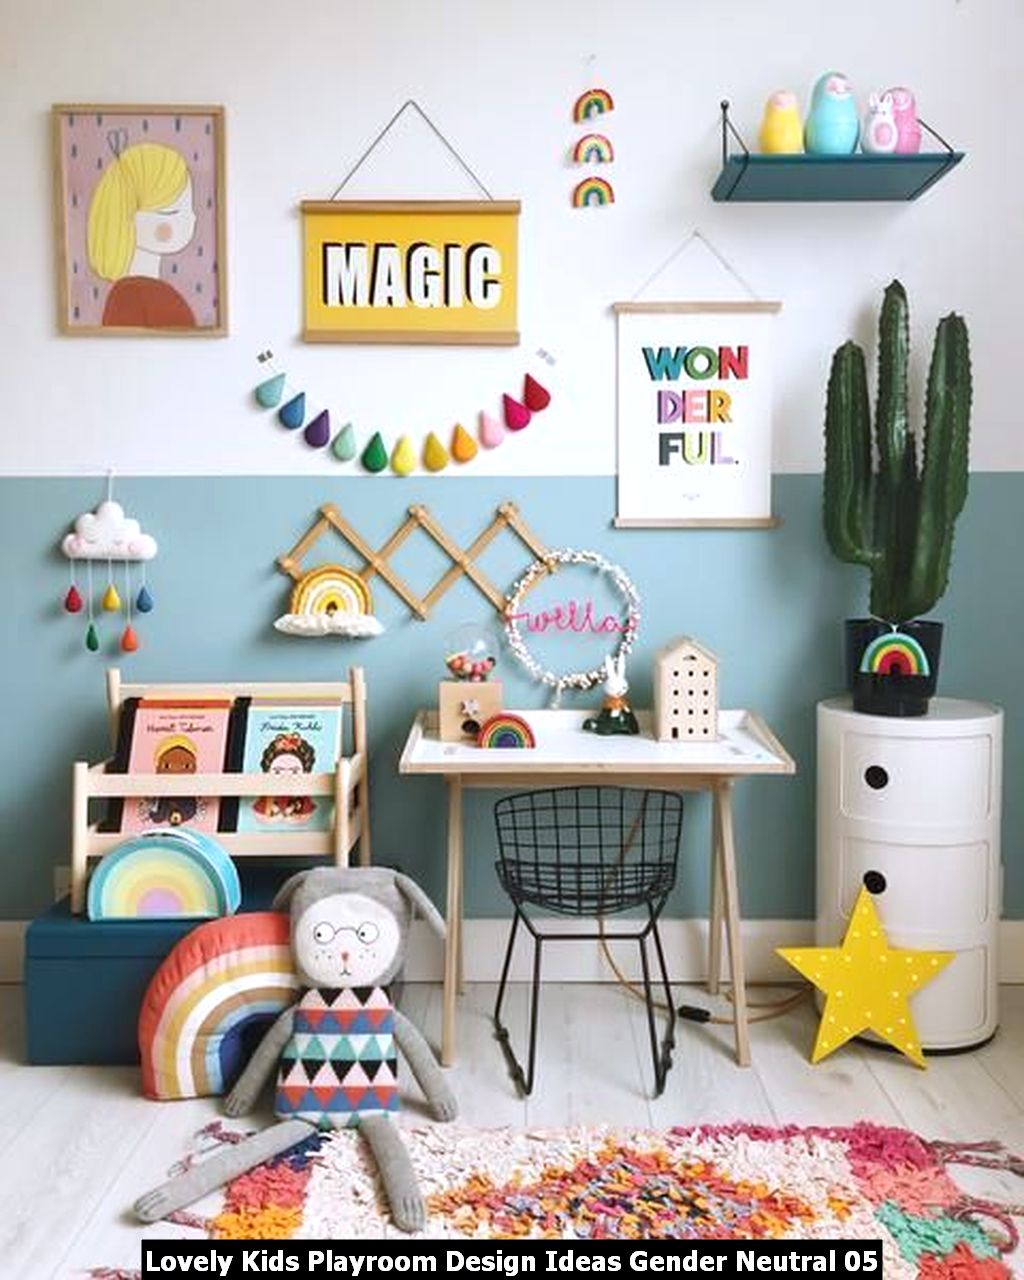 Lovely Kids Playroom Design Ideas Gender Neutral 05